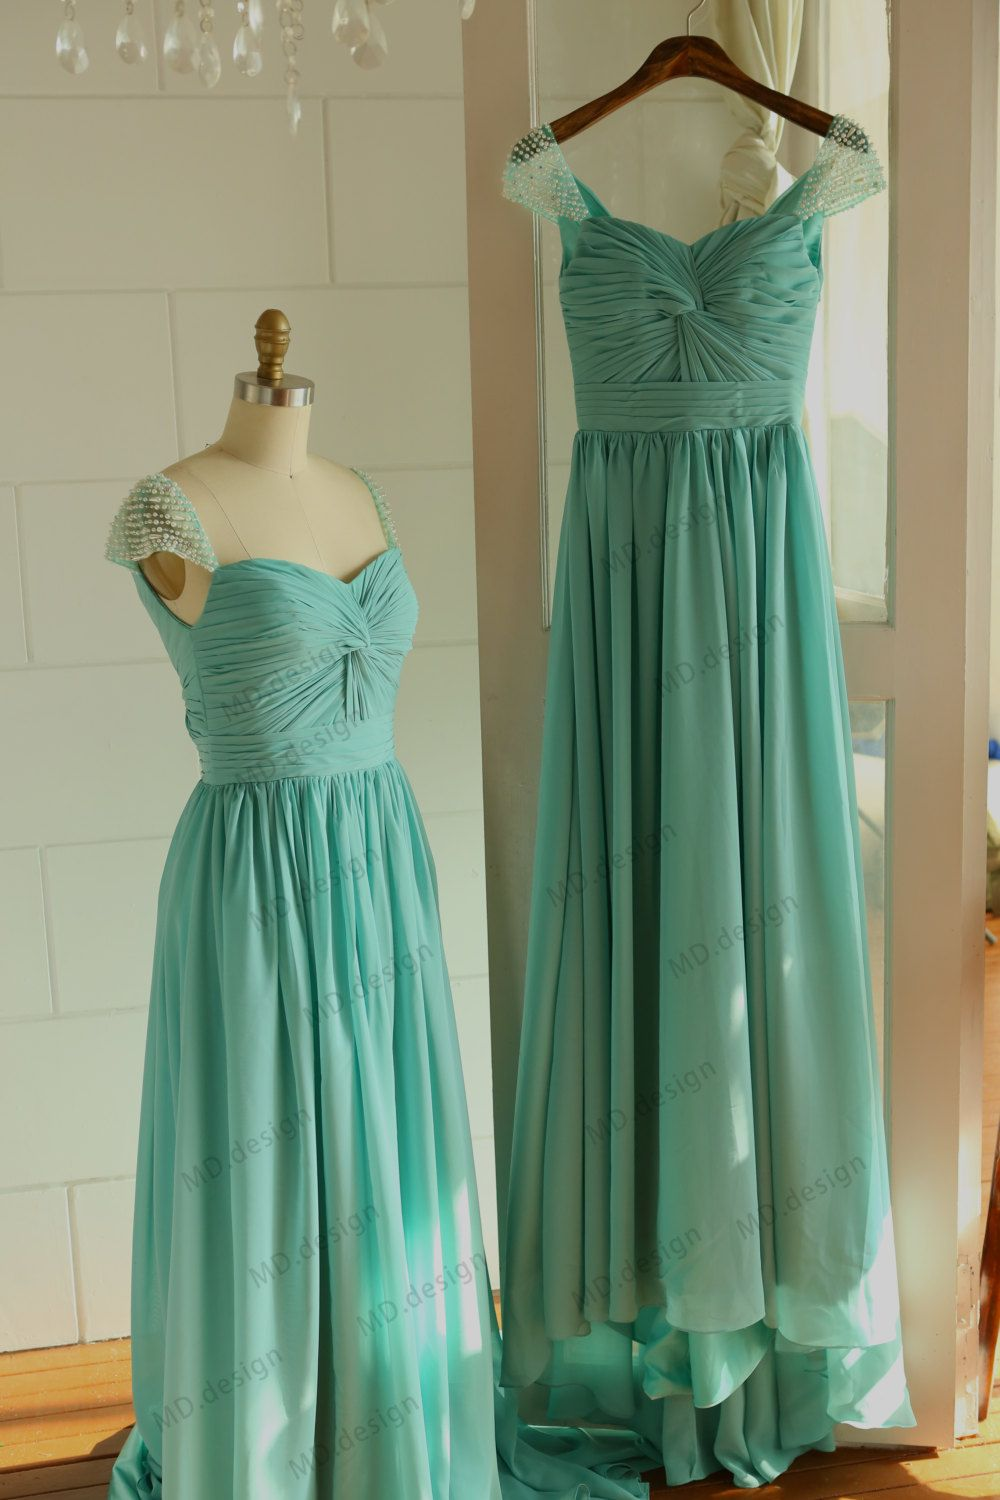 Ivorymint blue chiffon wedding dressbridesmaid by misdress